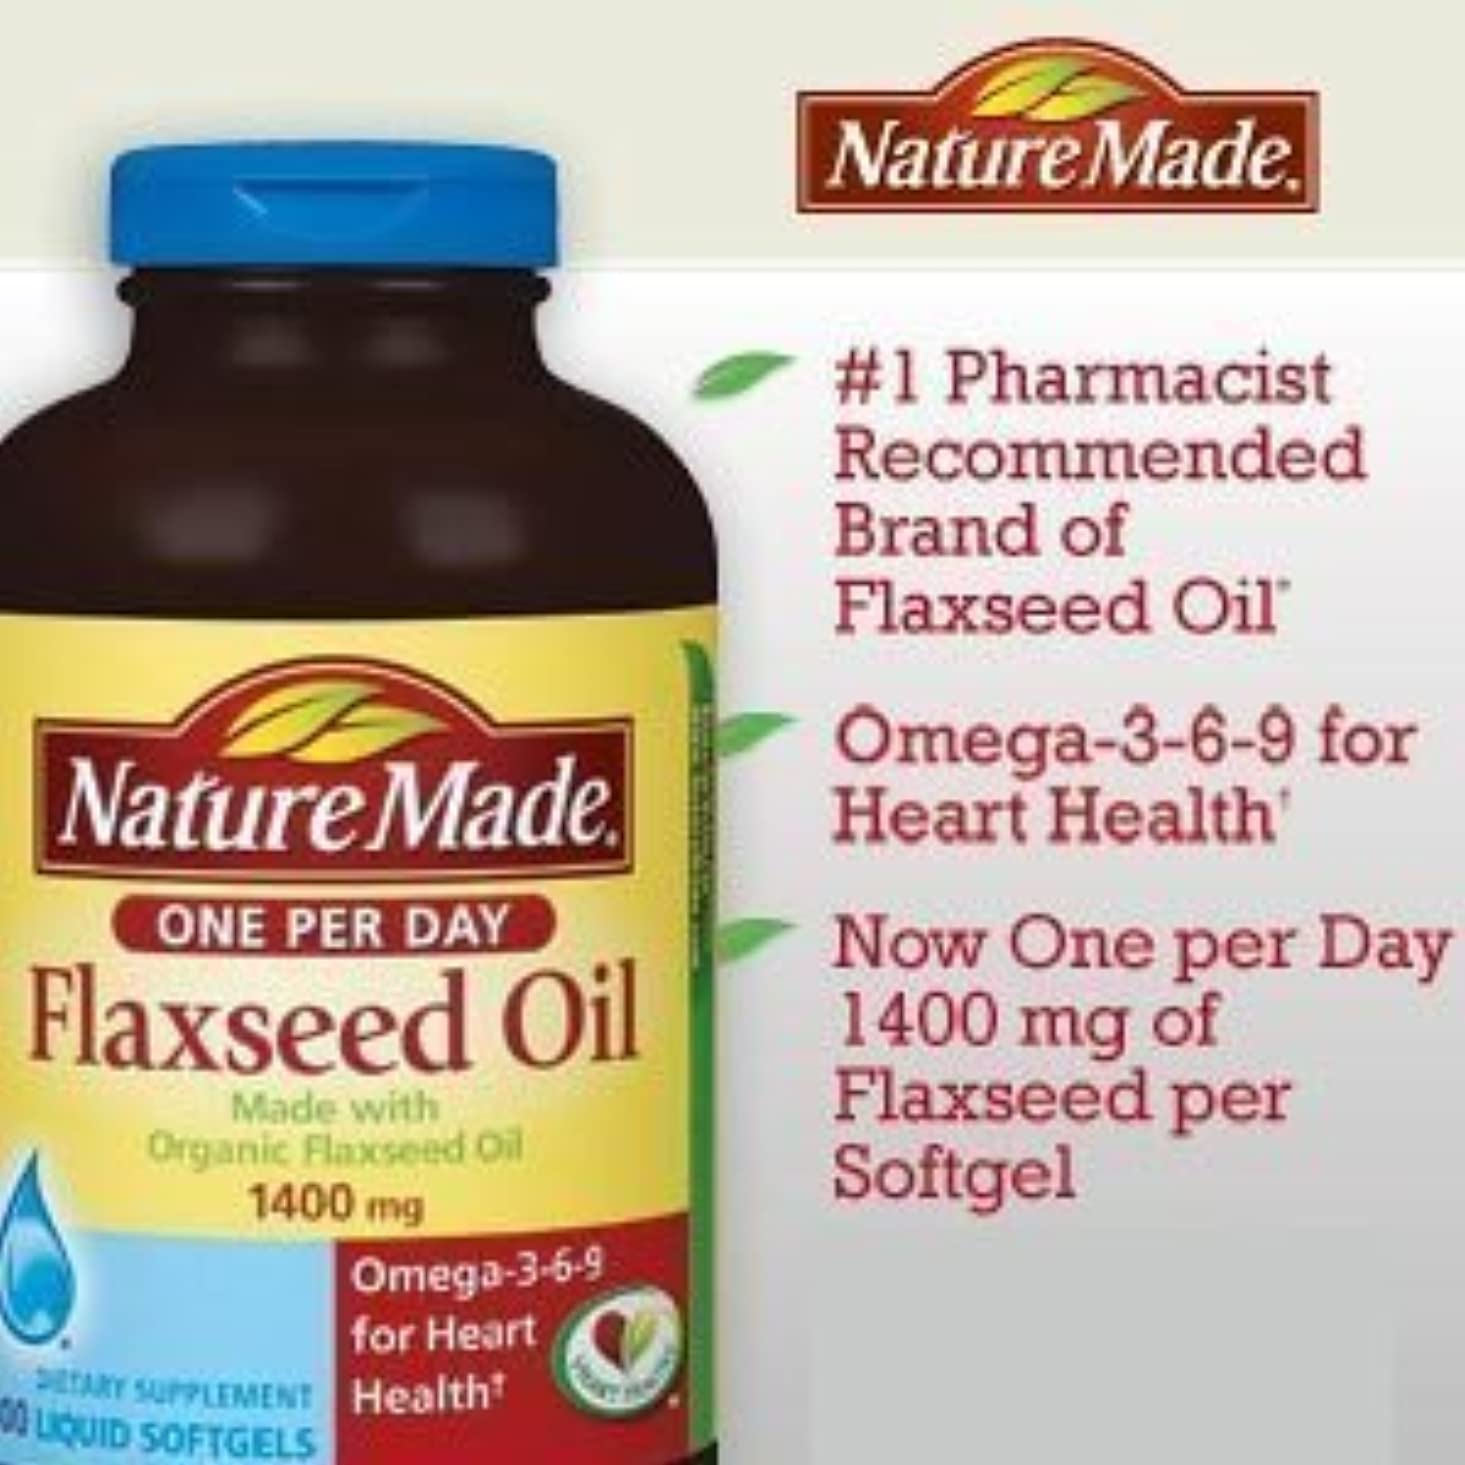 告白タックル実験をするNature Made Organic Flaxseed Oil, Omega-3-6-9 for Heart Health, 1400 mg, Liquid Softgels - 300 Count by USA [並行輸入品]